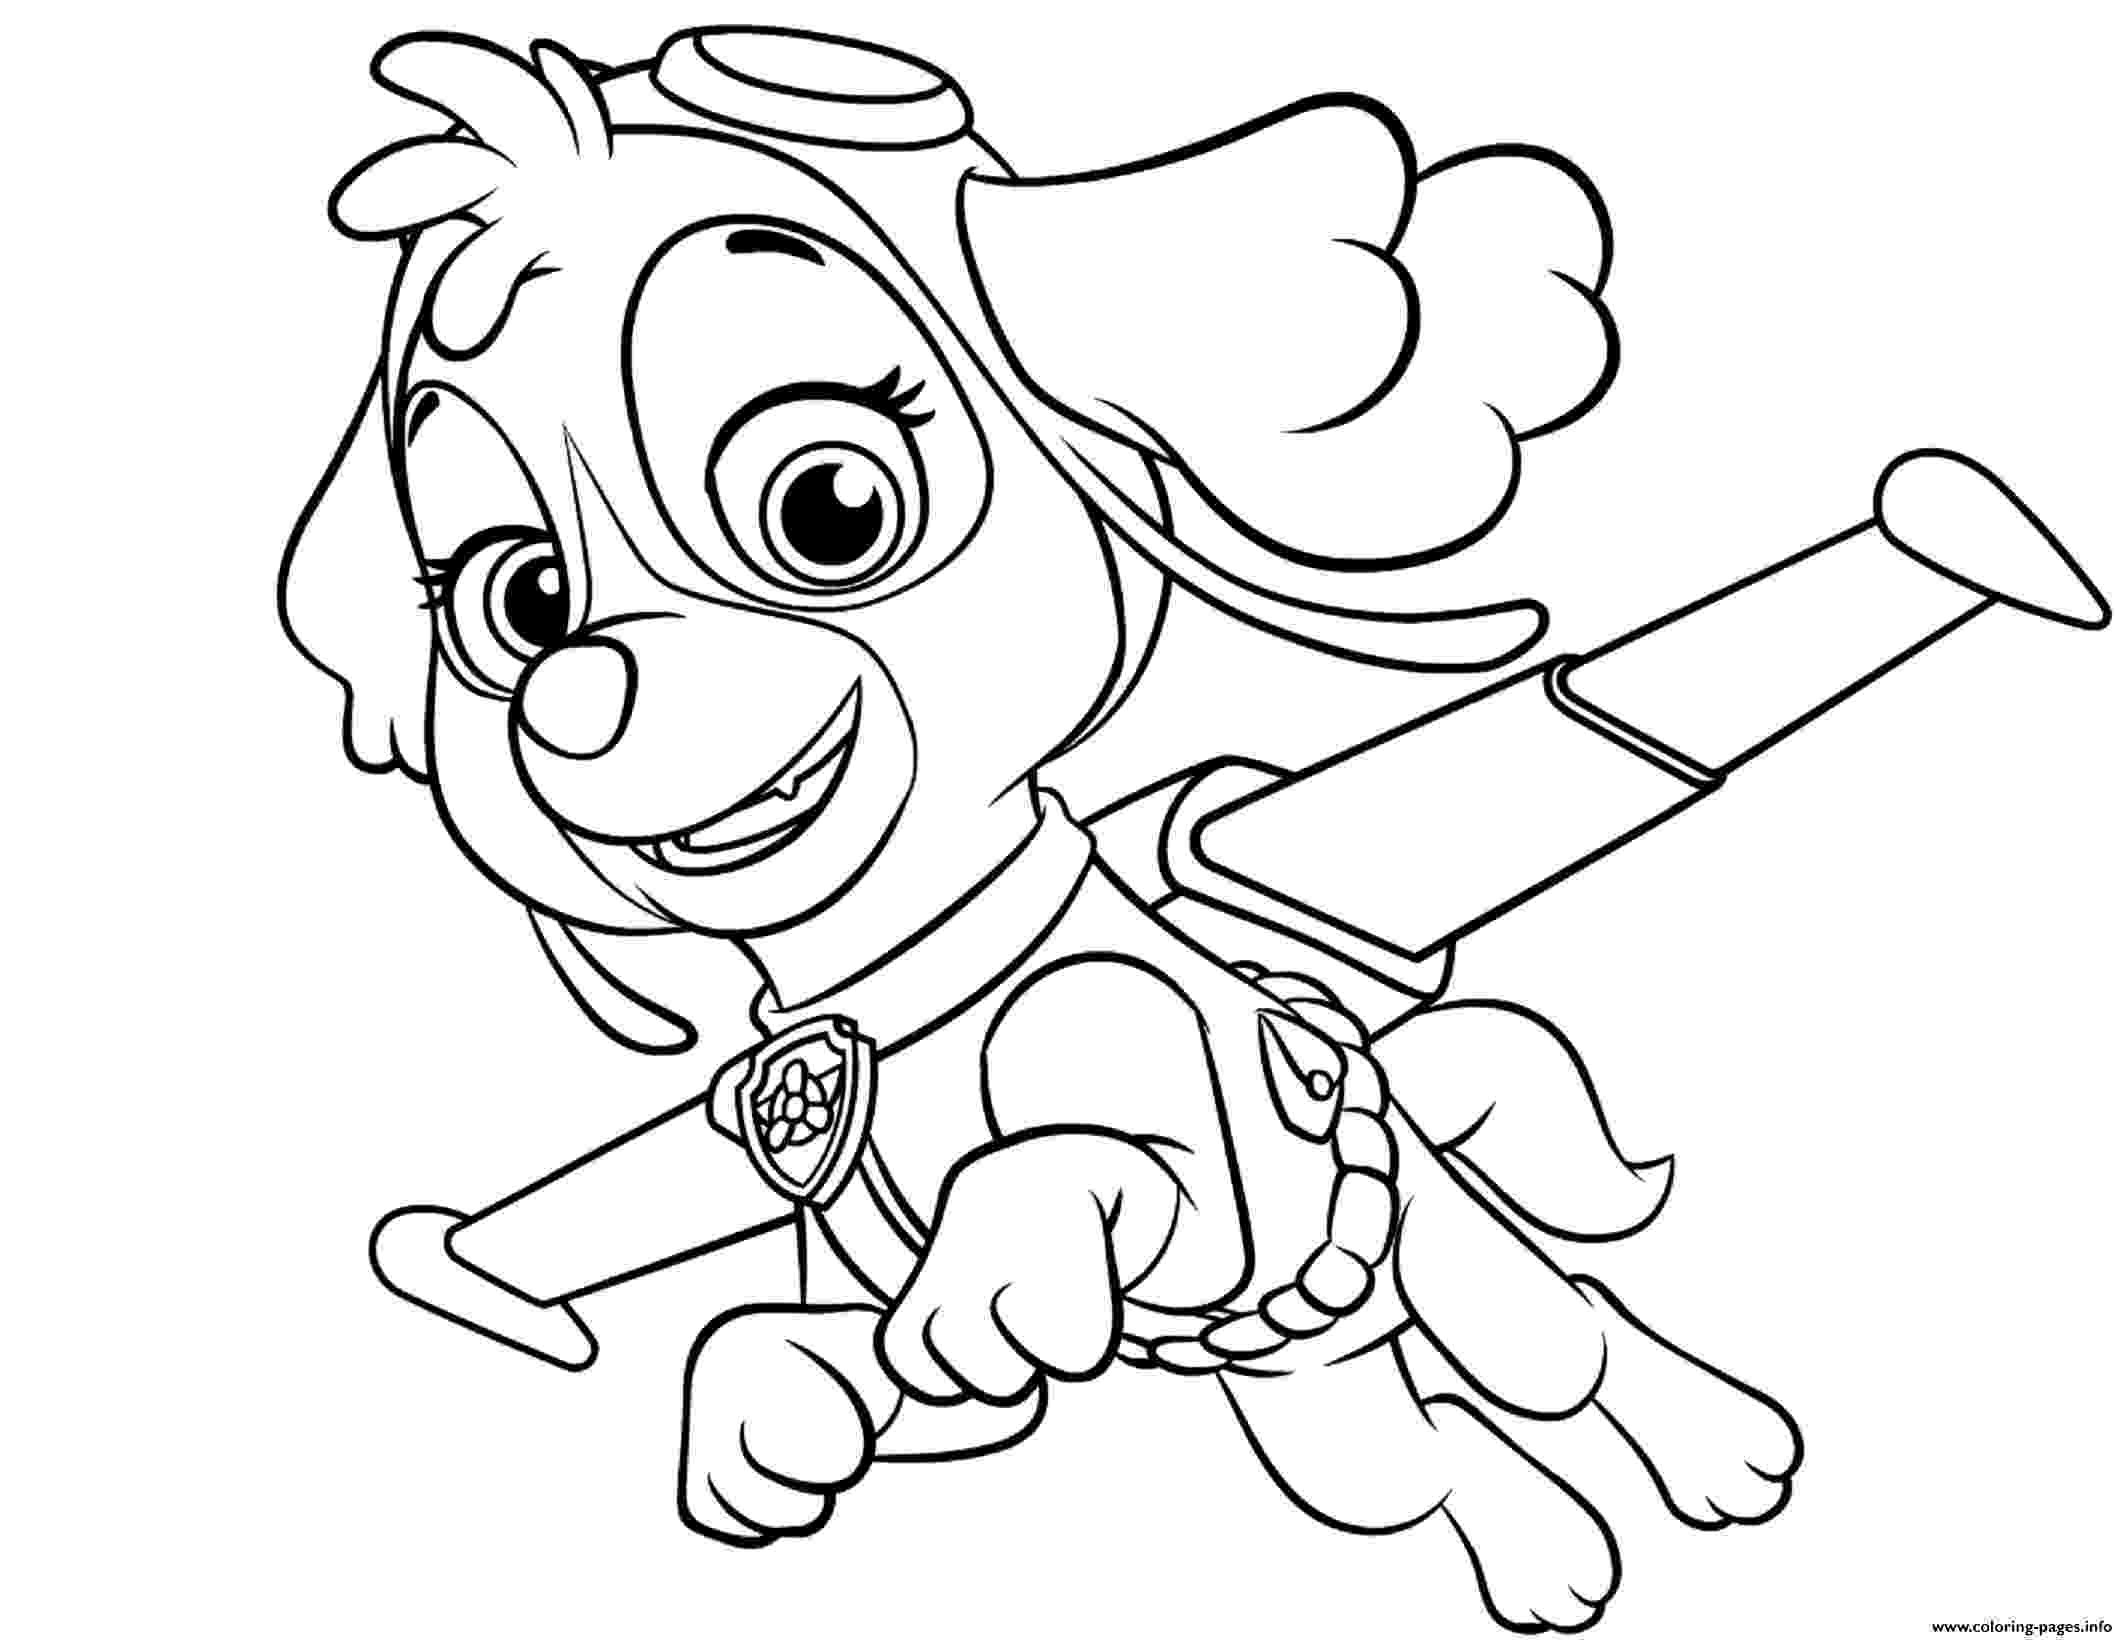 coloring pages of paw patrol chase paw patrol coloring pages to download and print for free of patrol paw pages coloring